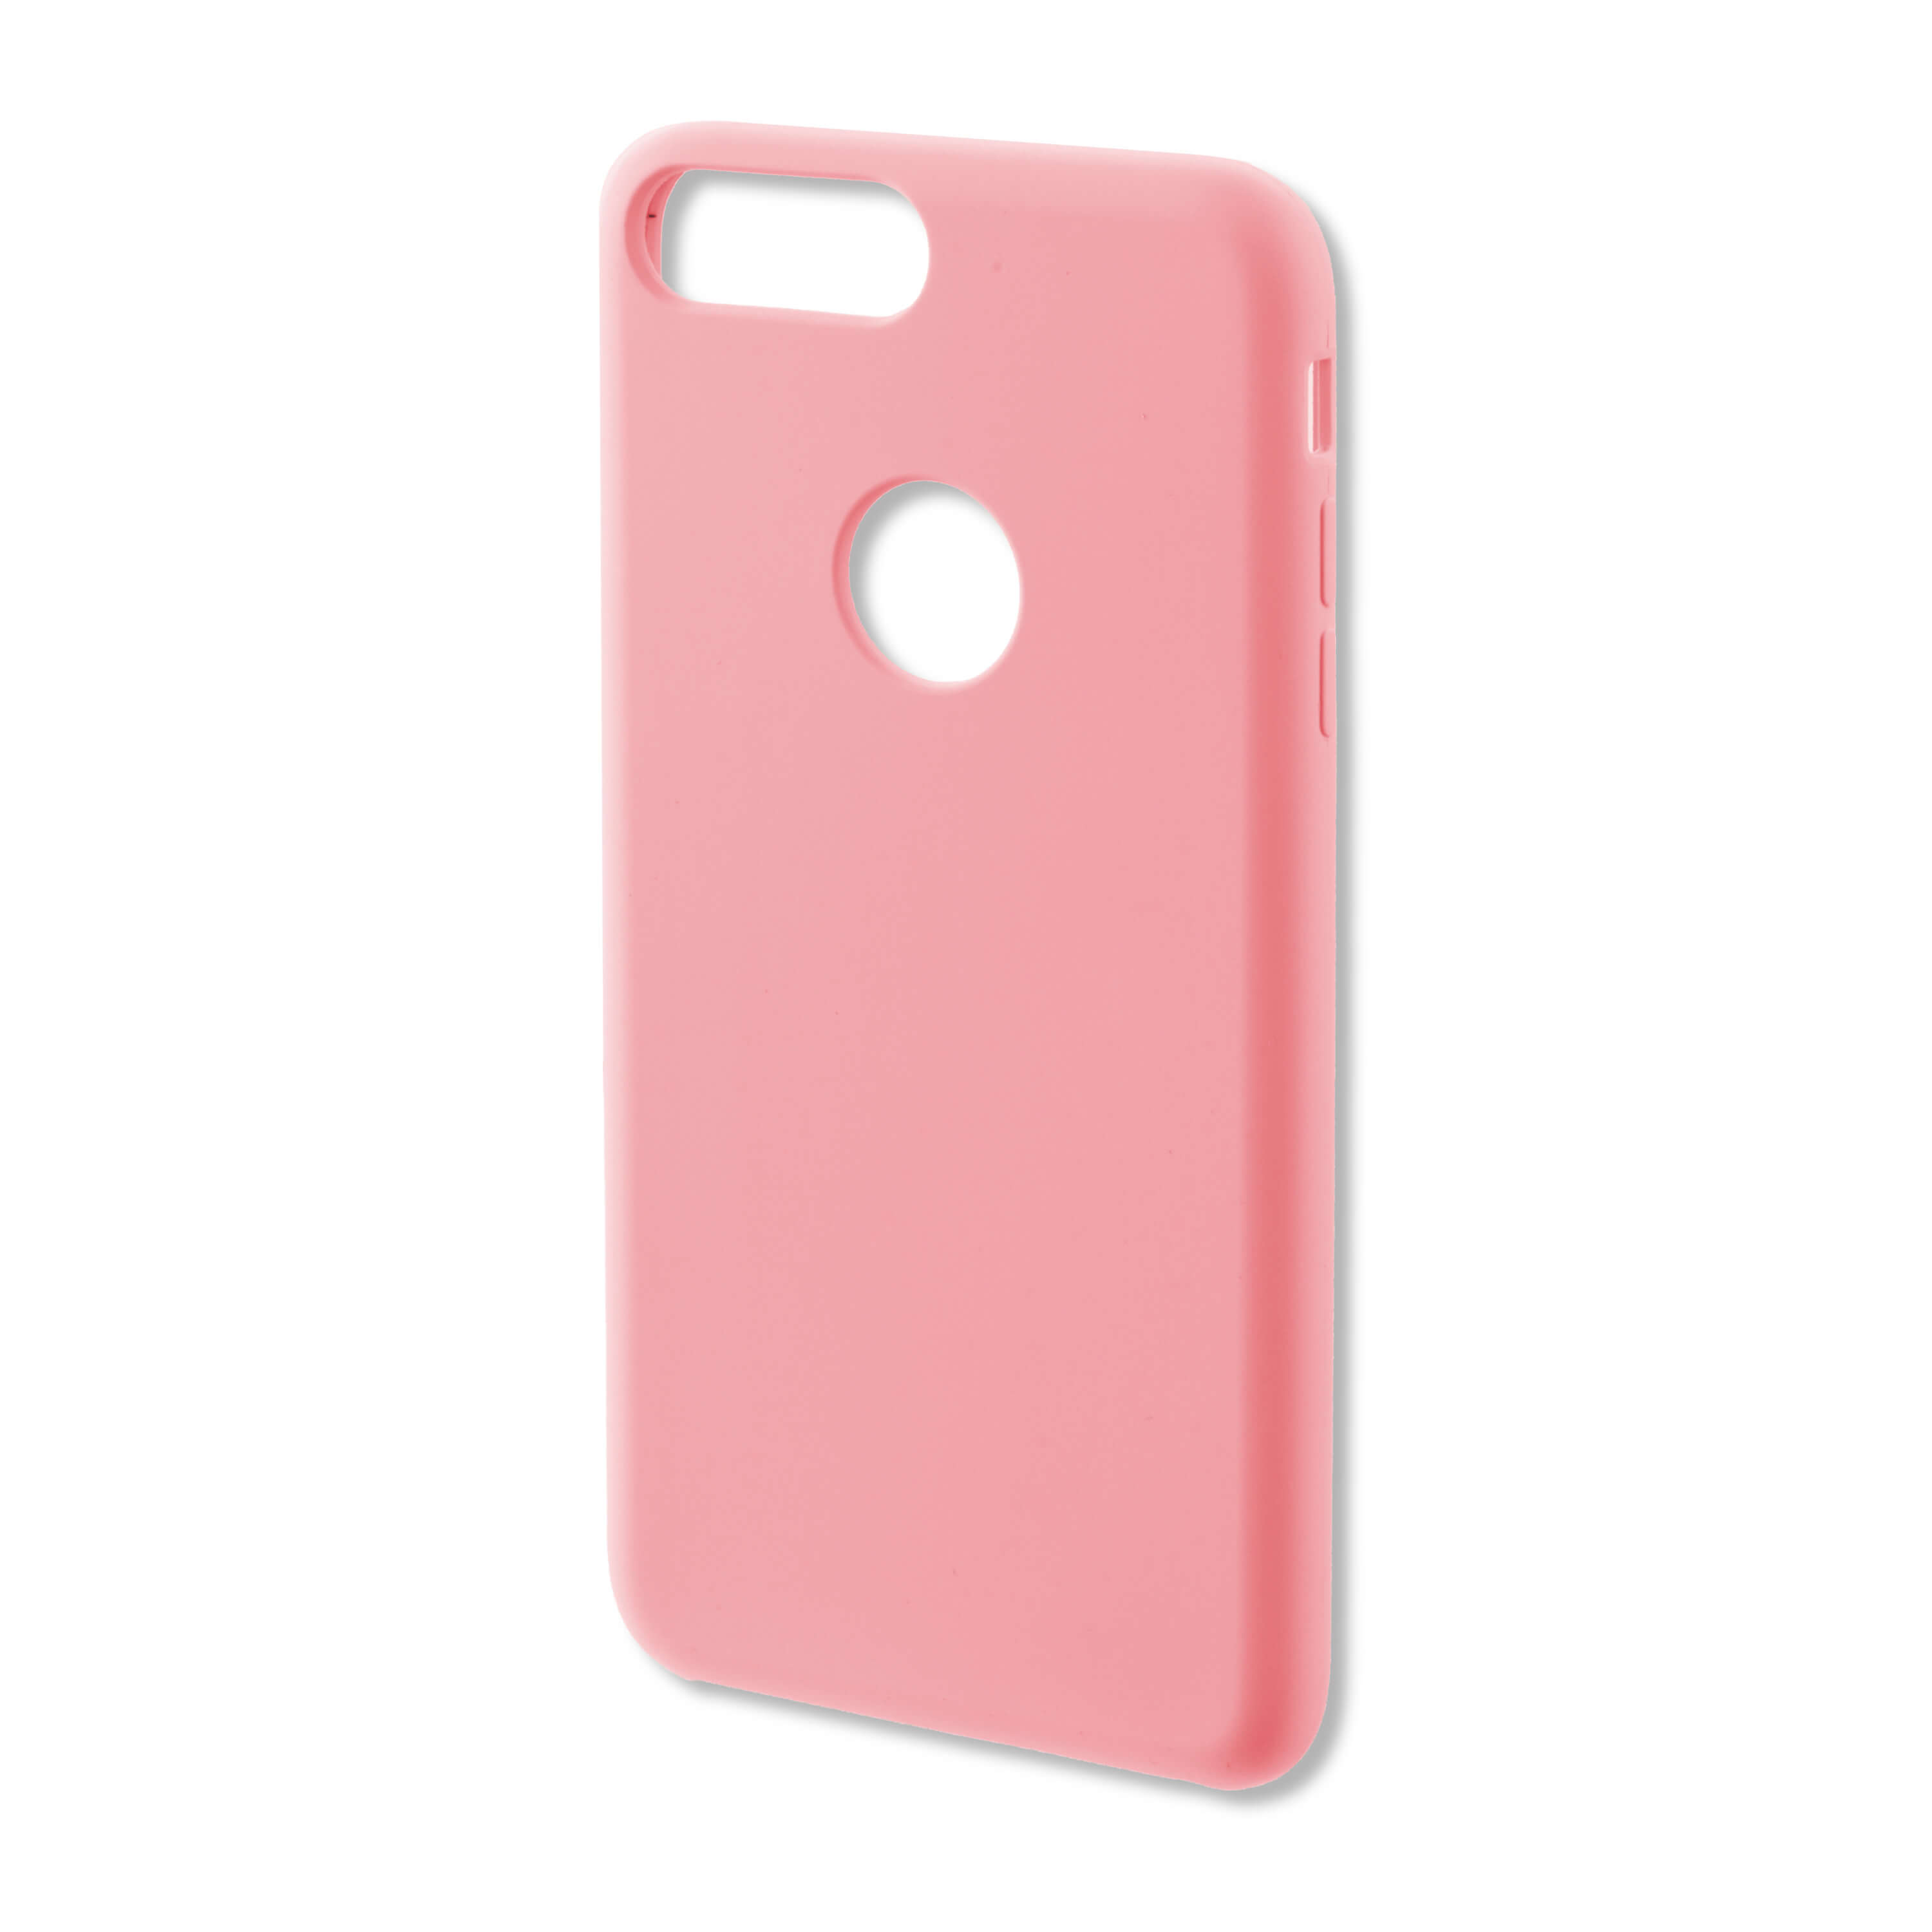 4smarts cupertino silicone case for iphone 7 pink price. Black Bedroom Furniture Sets. Home Design Ideas